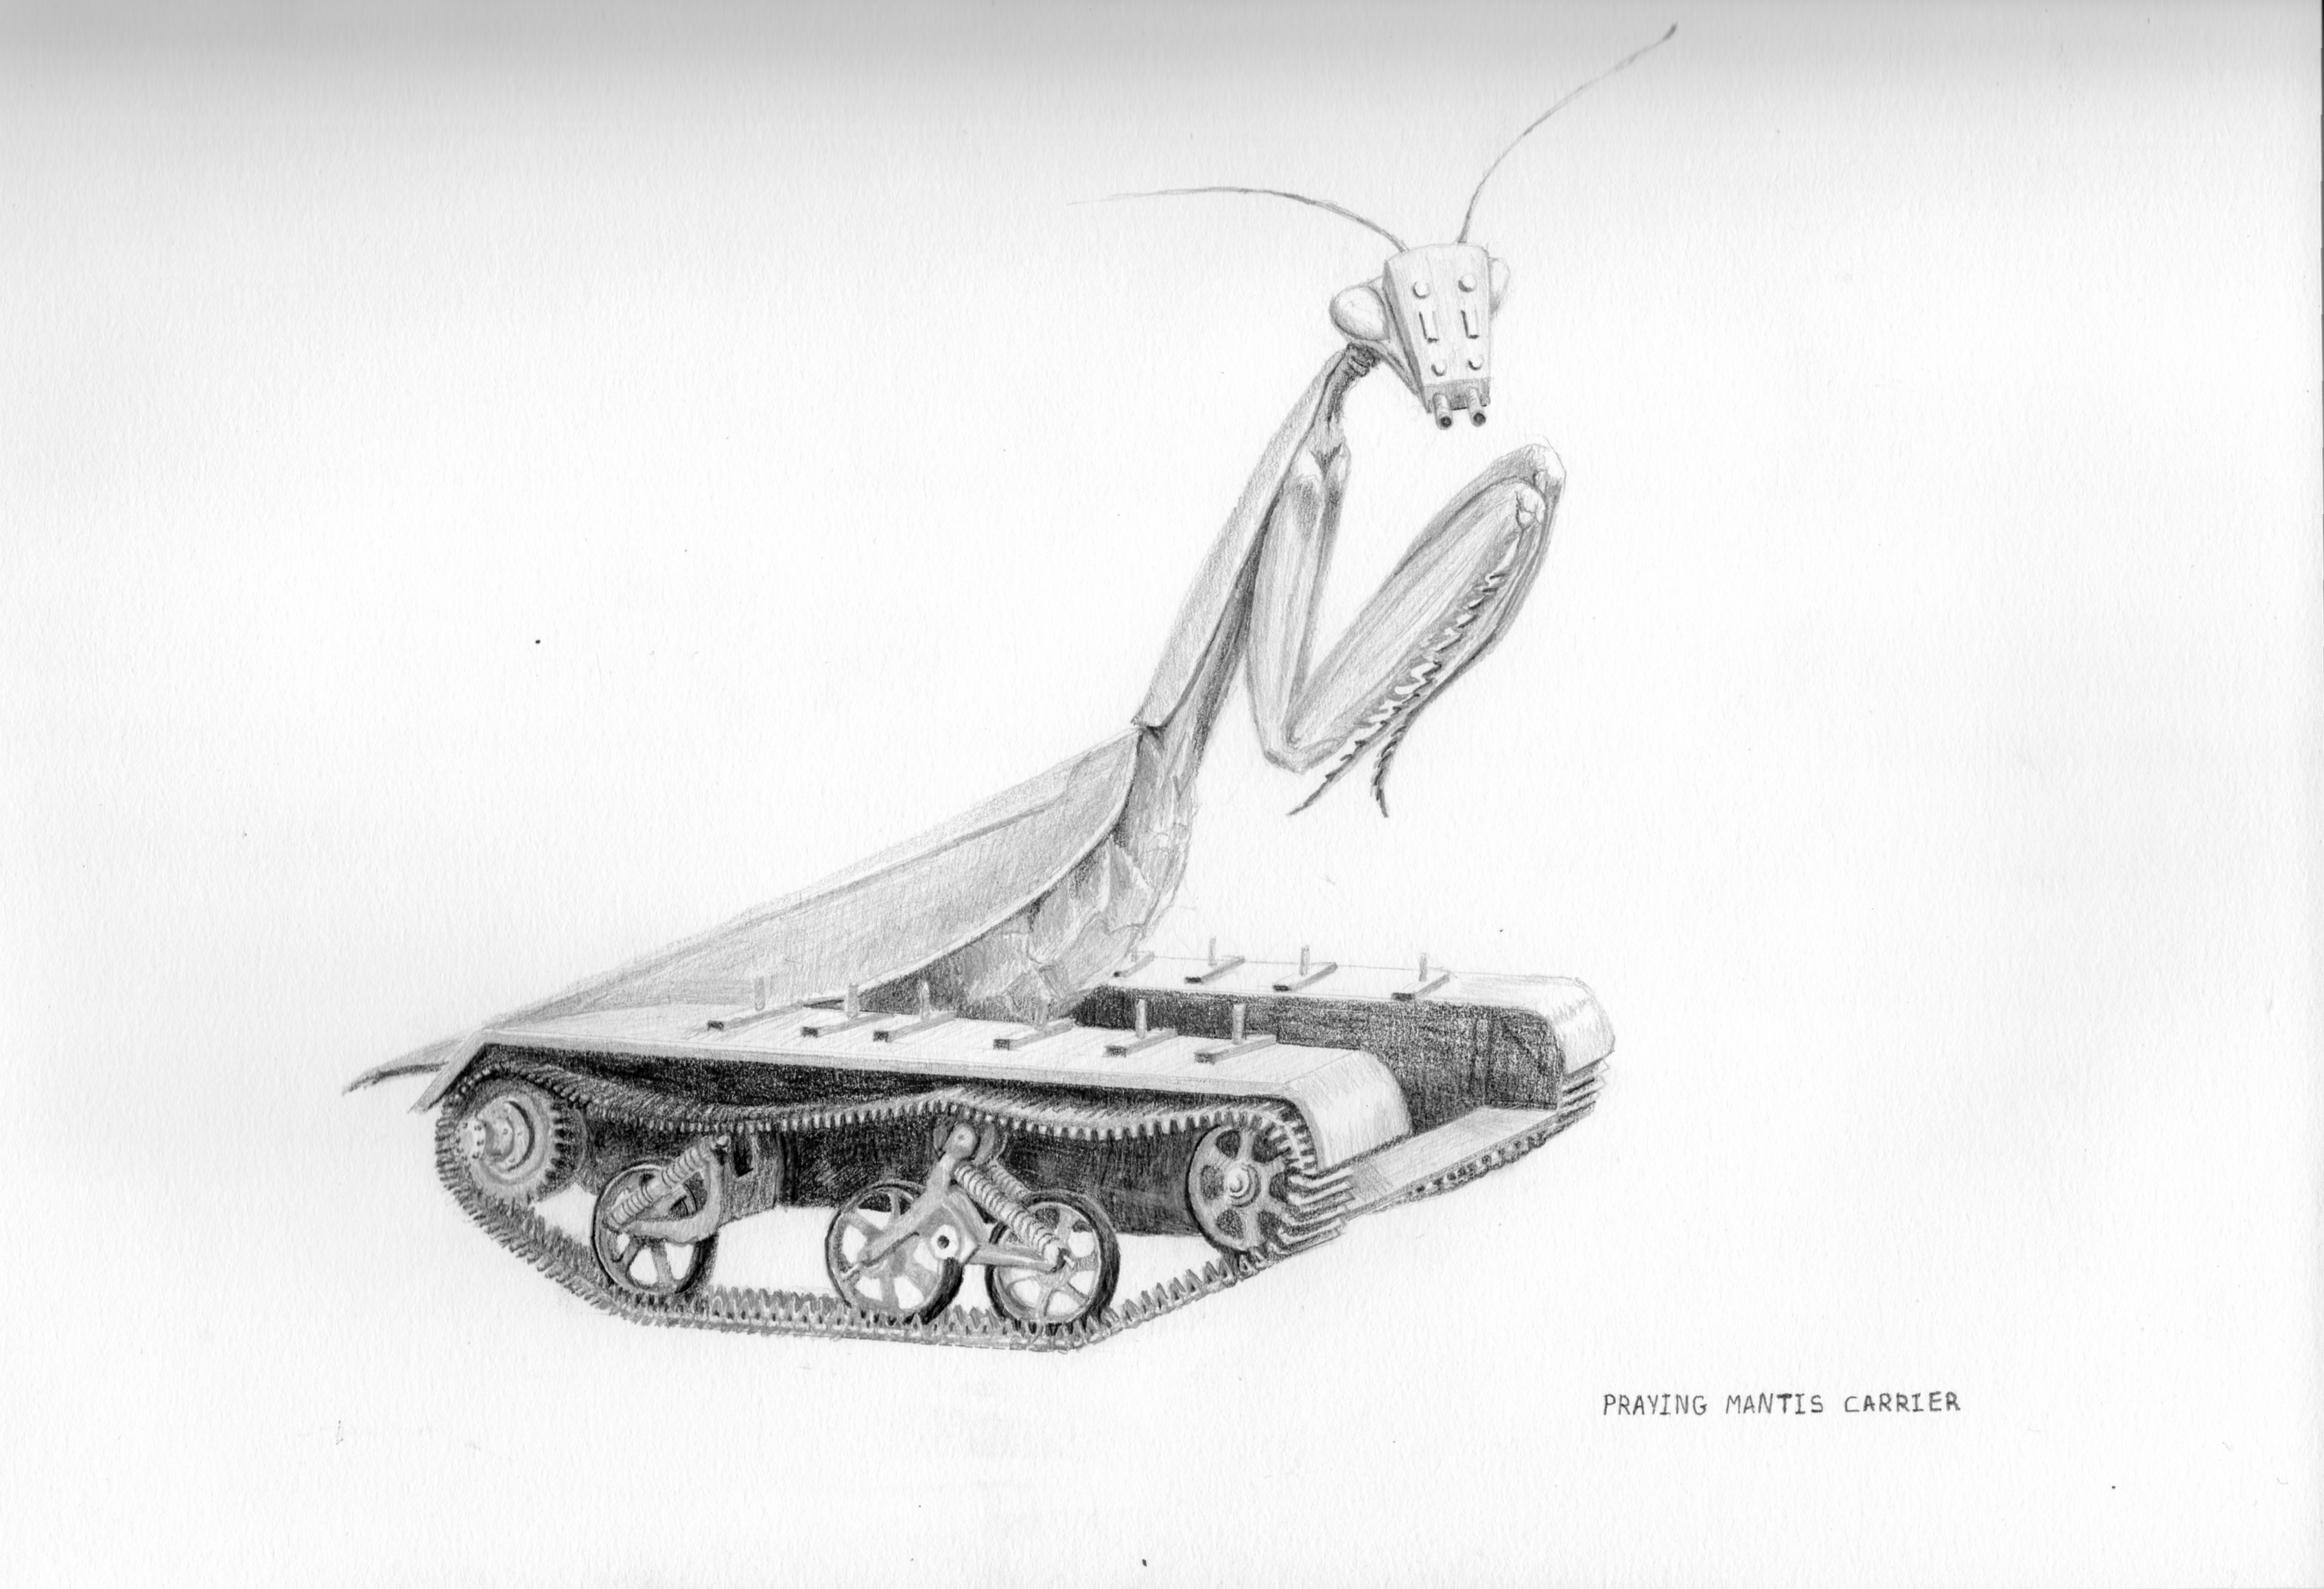 PRAYING MANTIS CARRIER